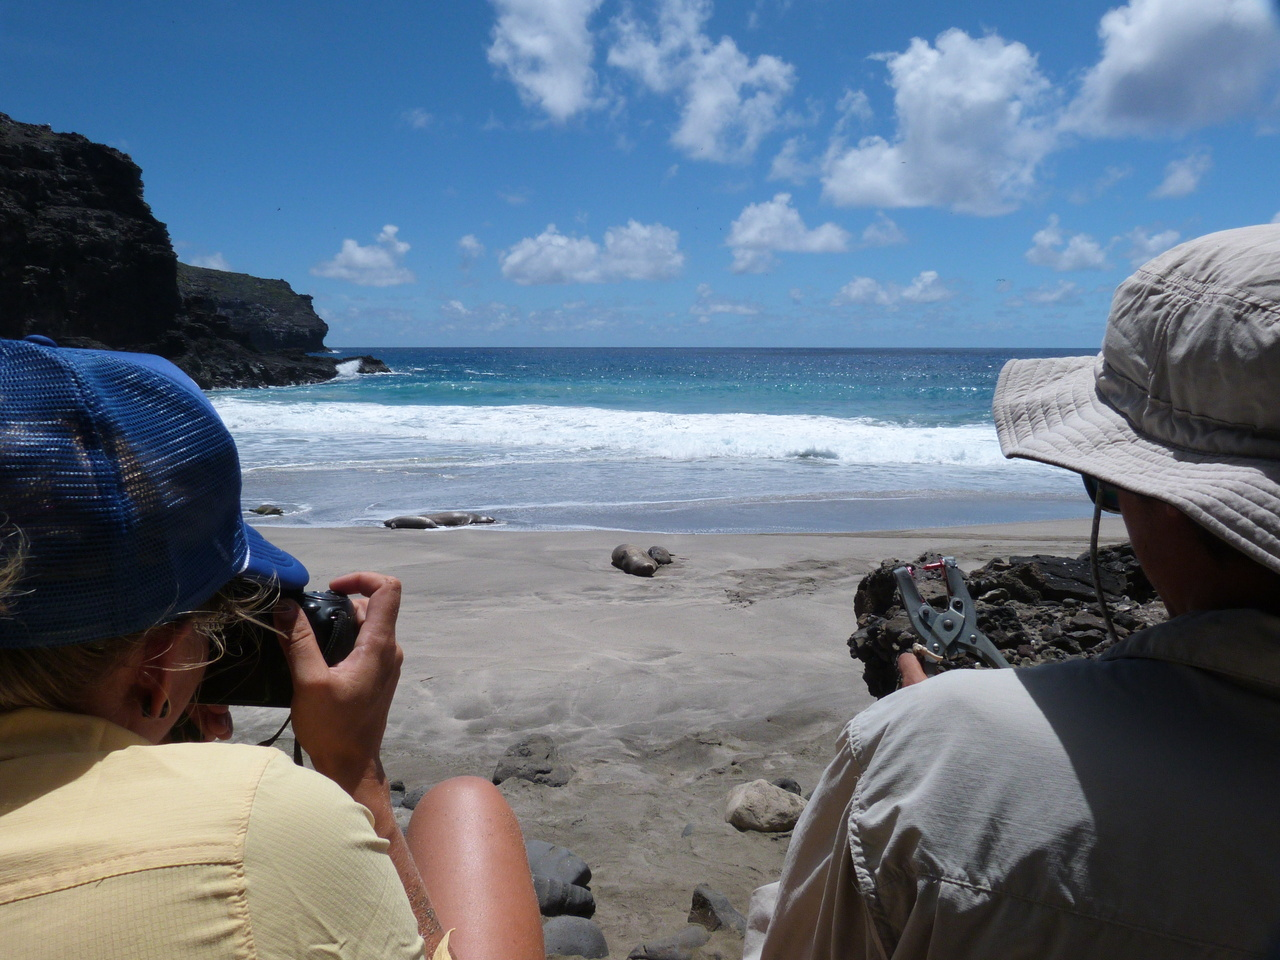 Field biologists conduct a monk seal population census and assessment